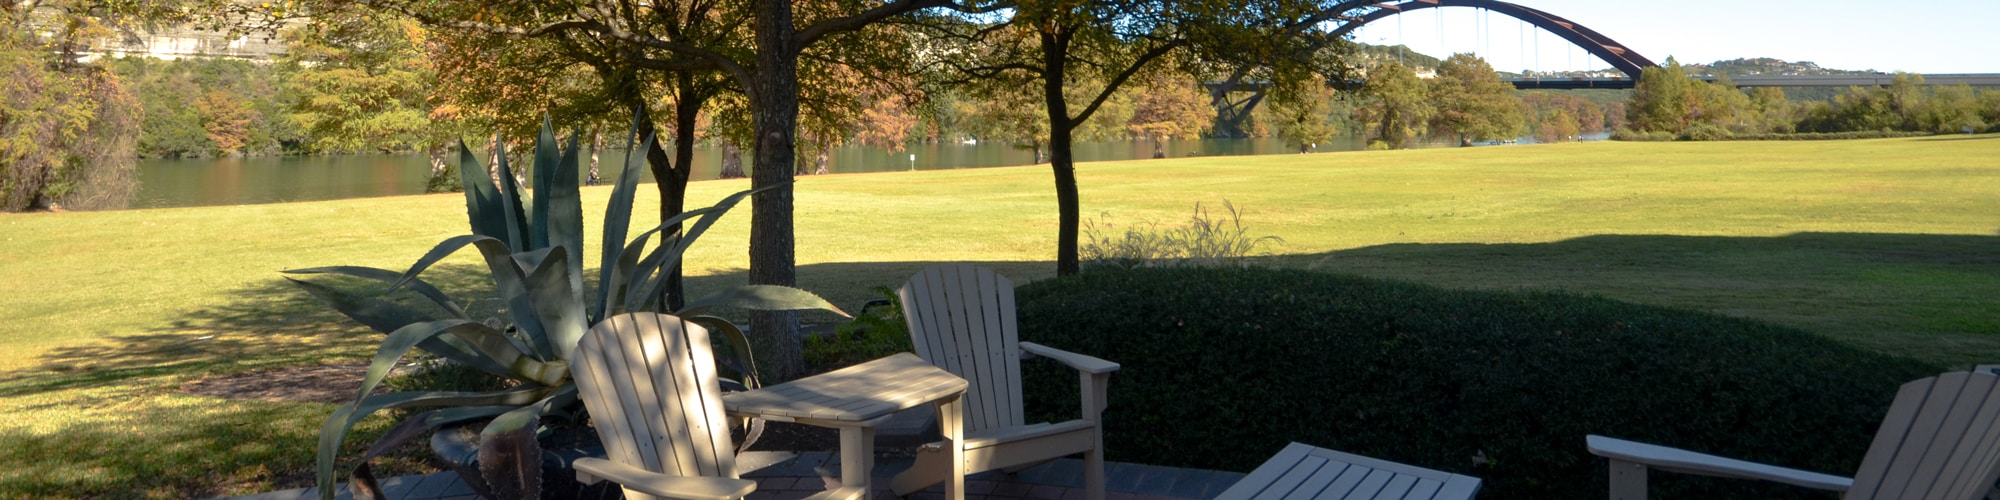 Plaza-on-the-Lake-Suite-380-Sublease-Outdoor-Seating-Area